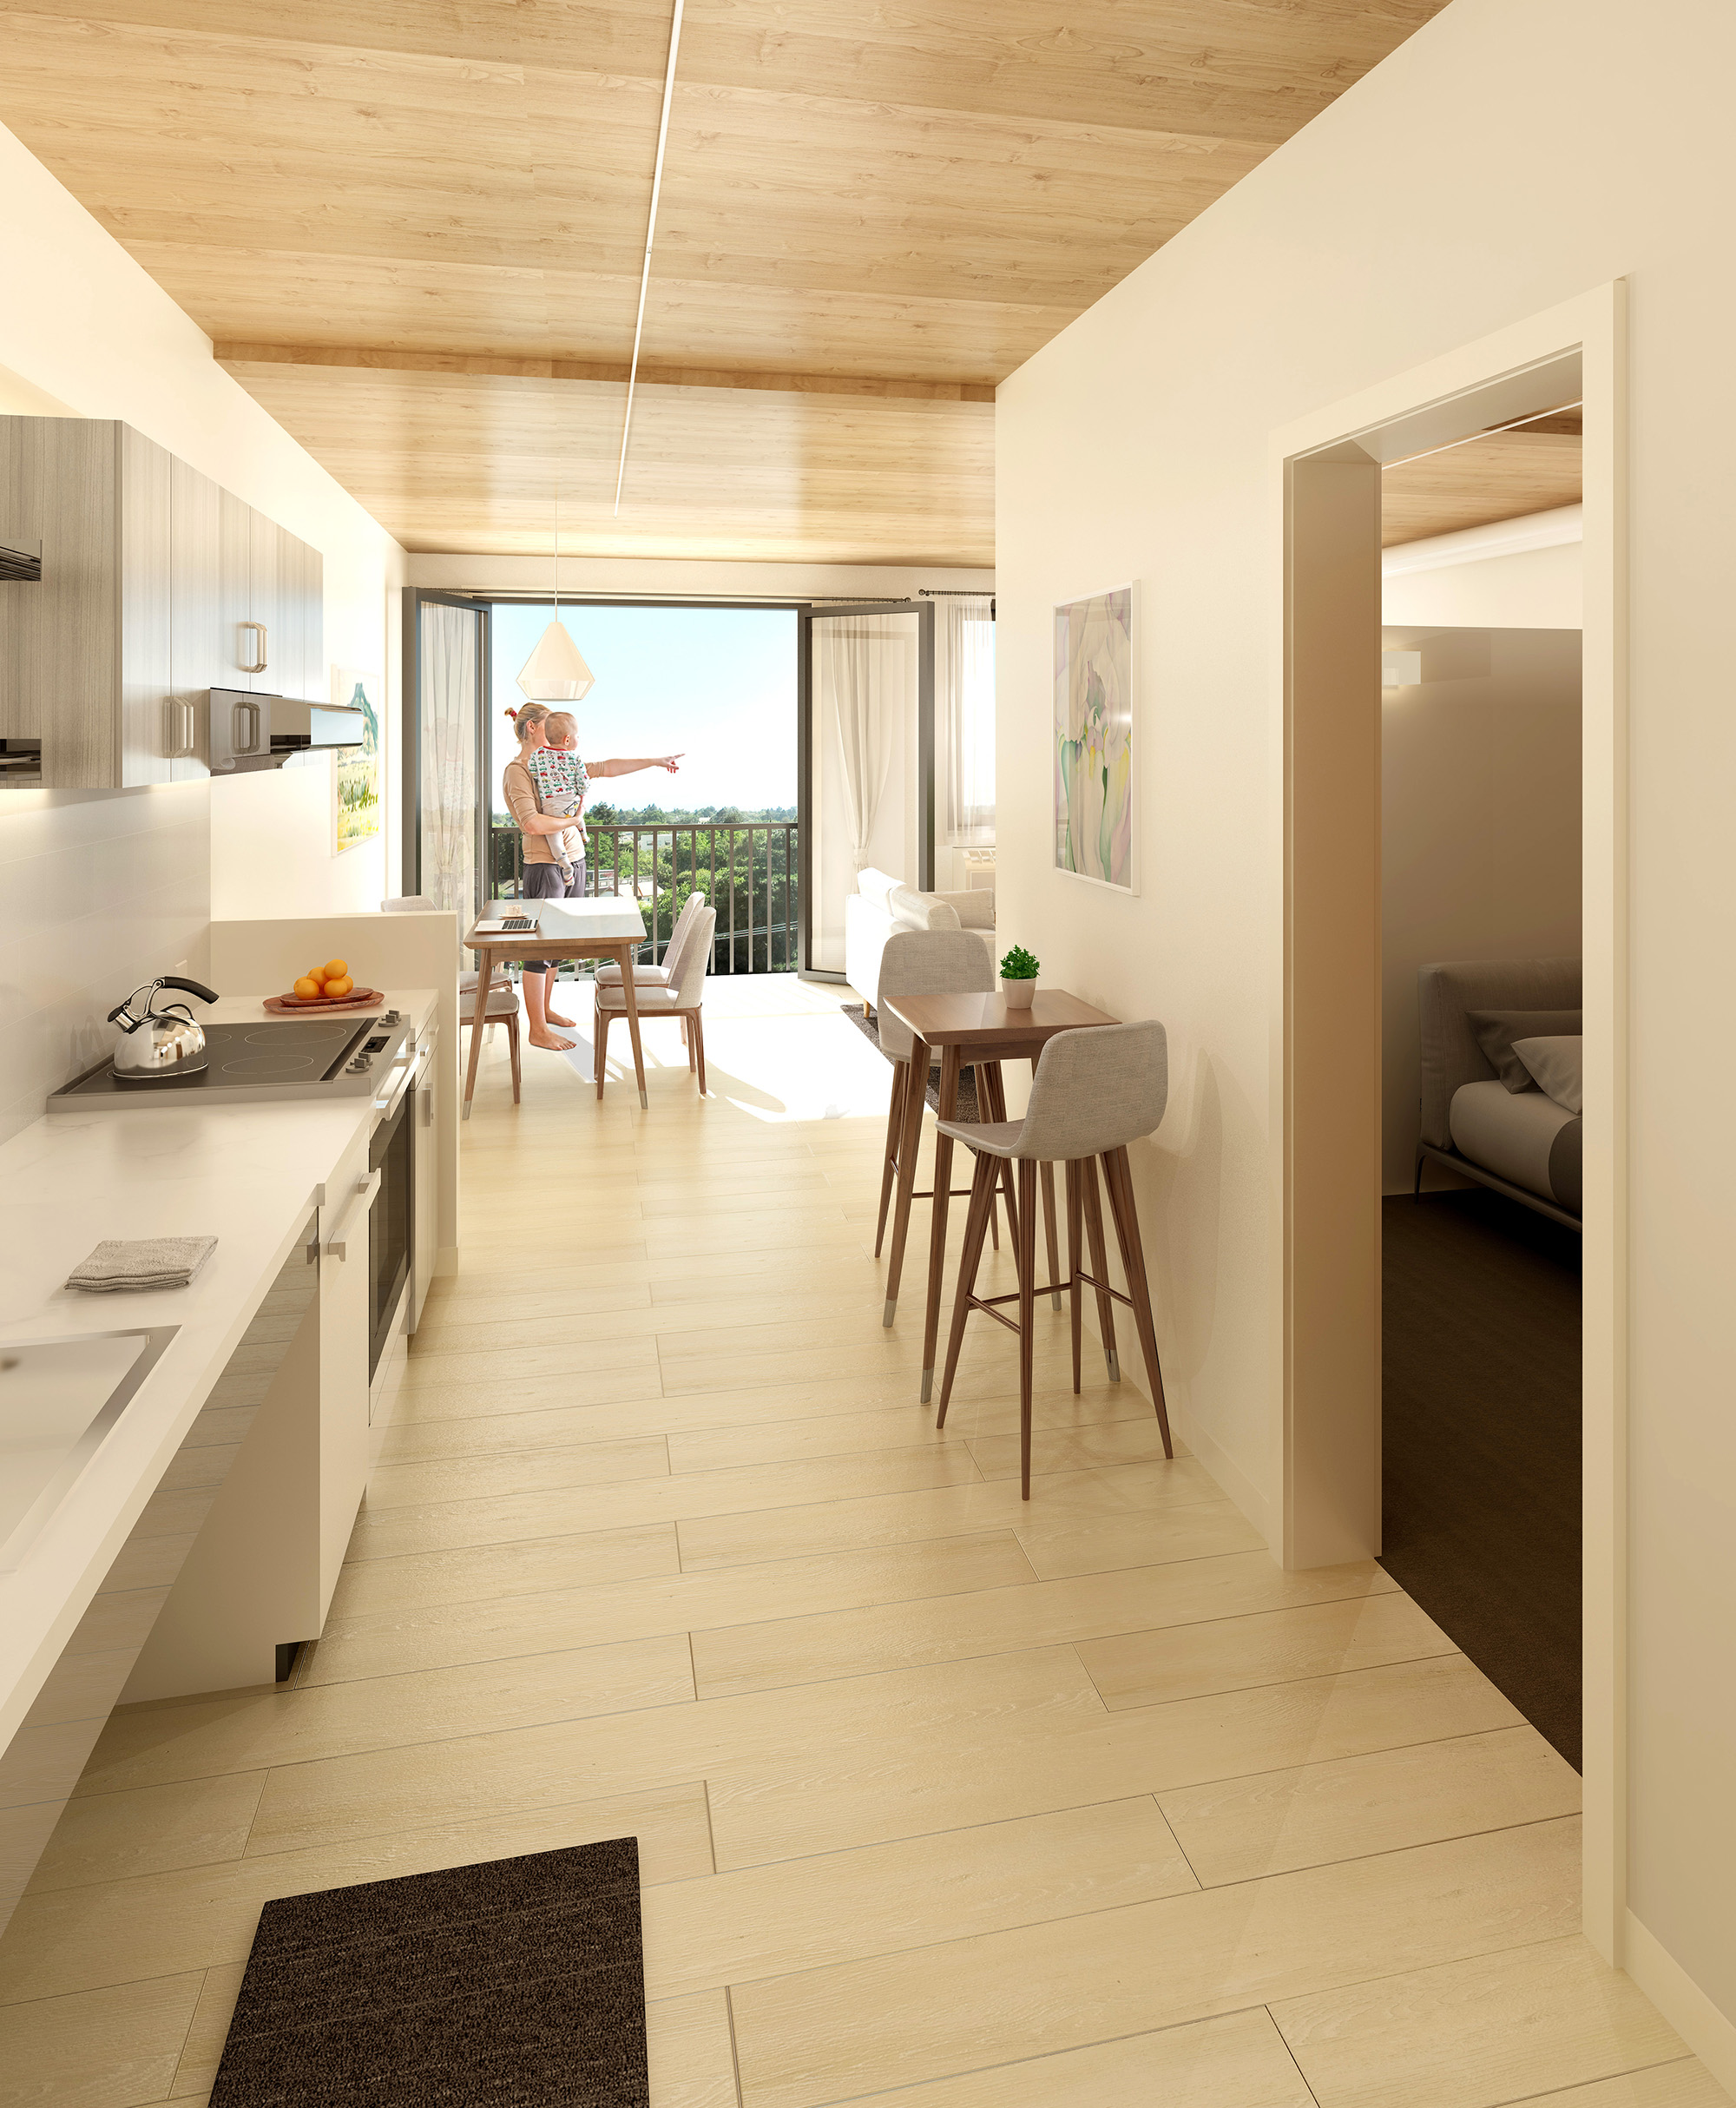 The Canyons encourages  inter-generational living  as part of an active, urban lifestyle.